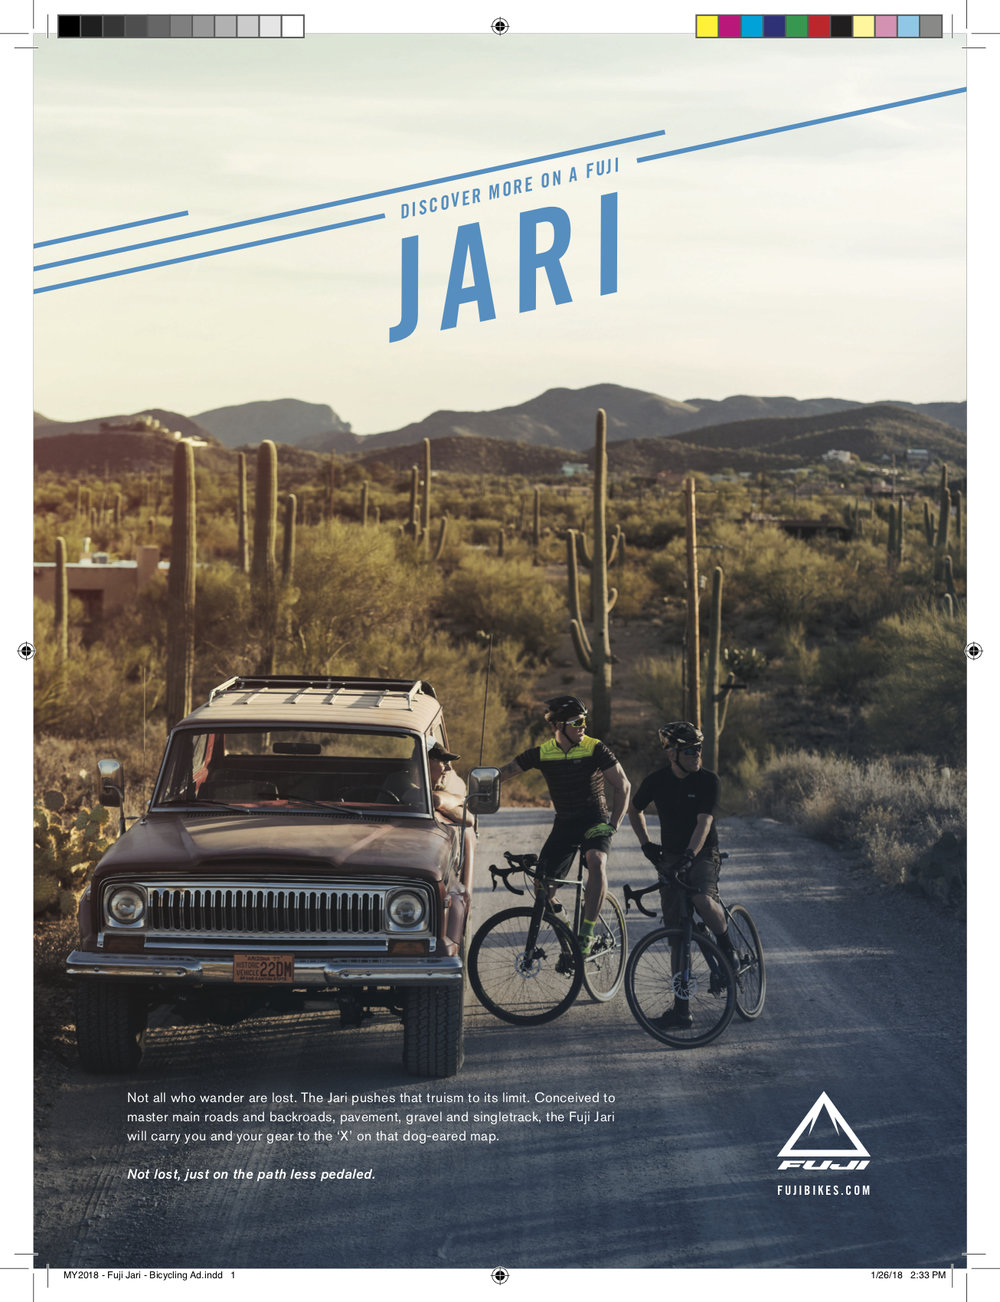 MY2018 - Fuji Jari - Bicycling Ad.jpg